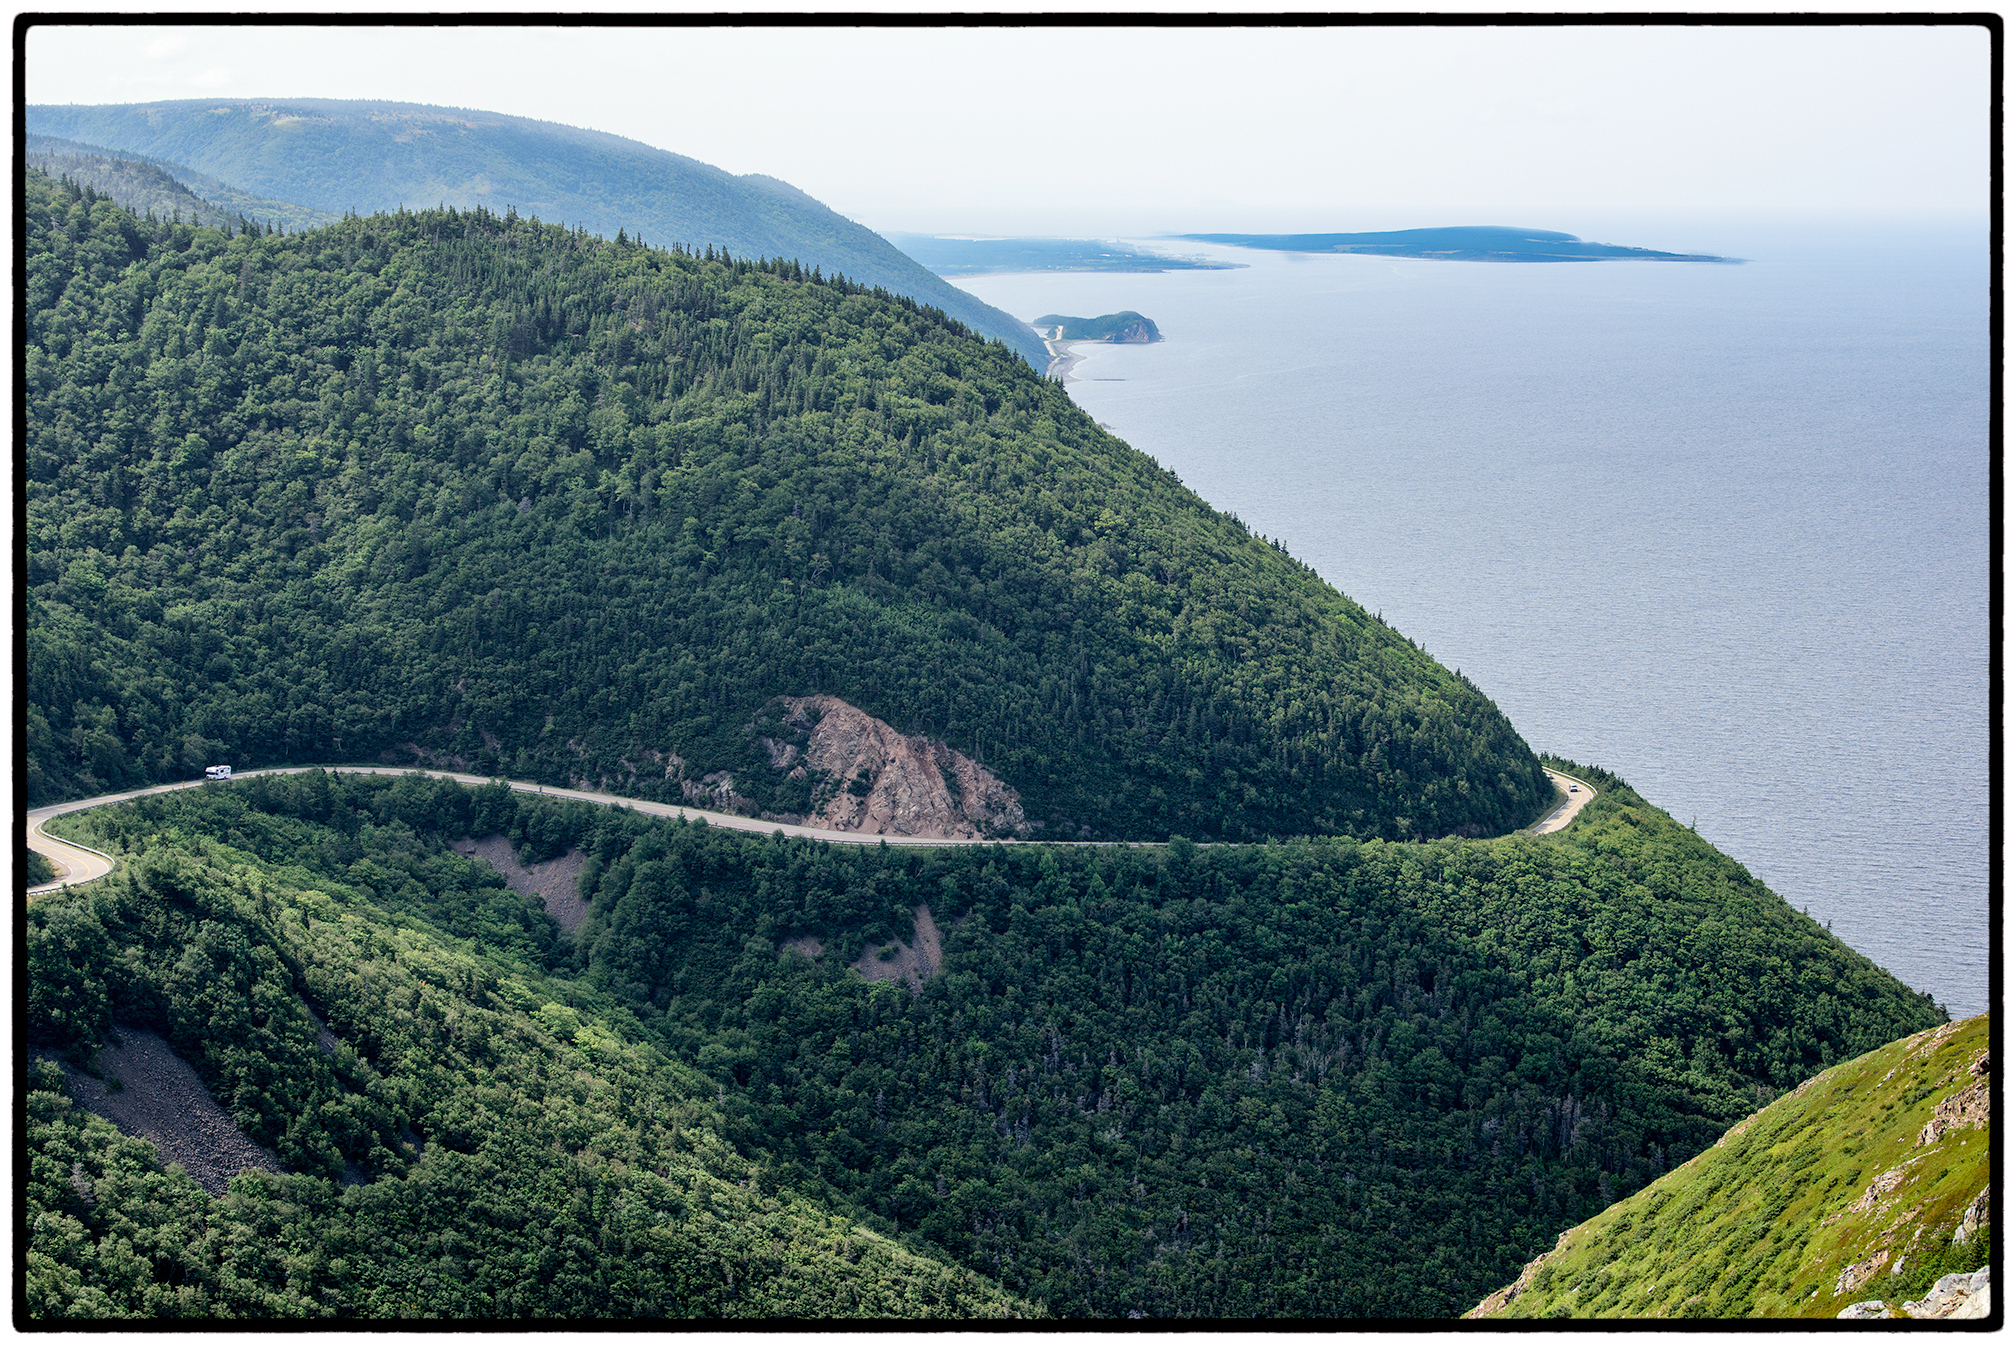 The payoff for a five mile hike on Cape Breton Island